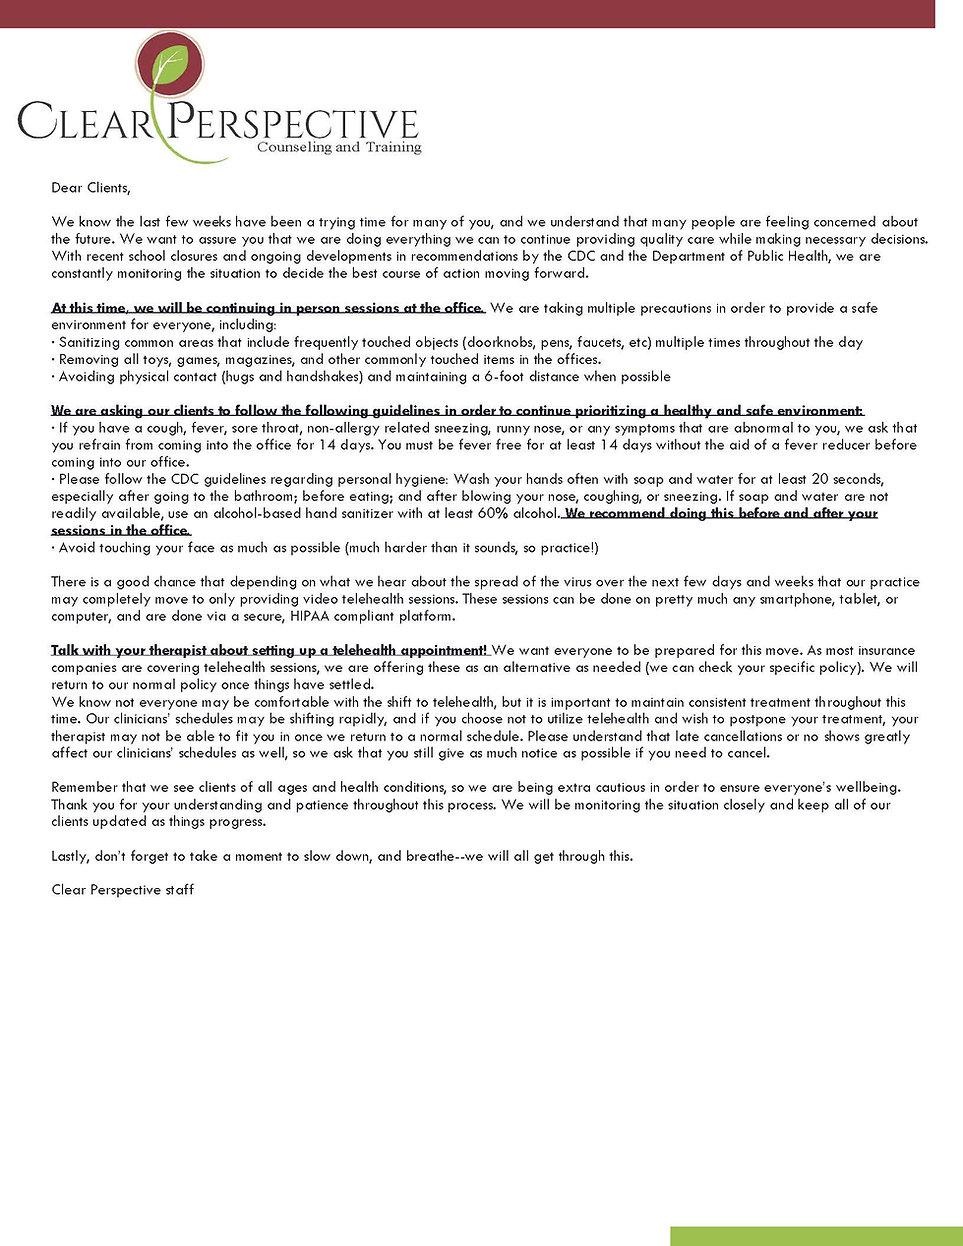 letter about Covid 19.jpg